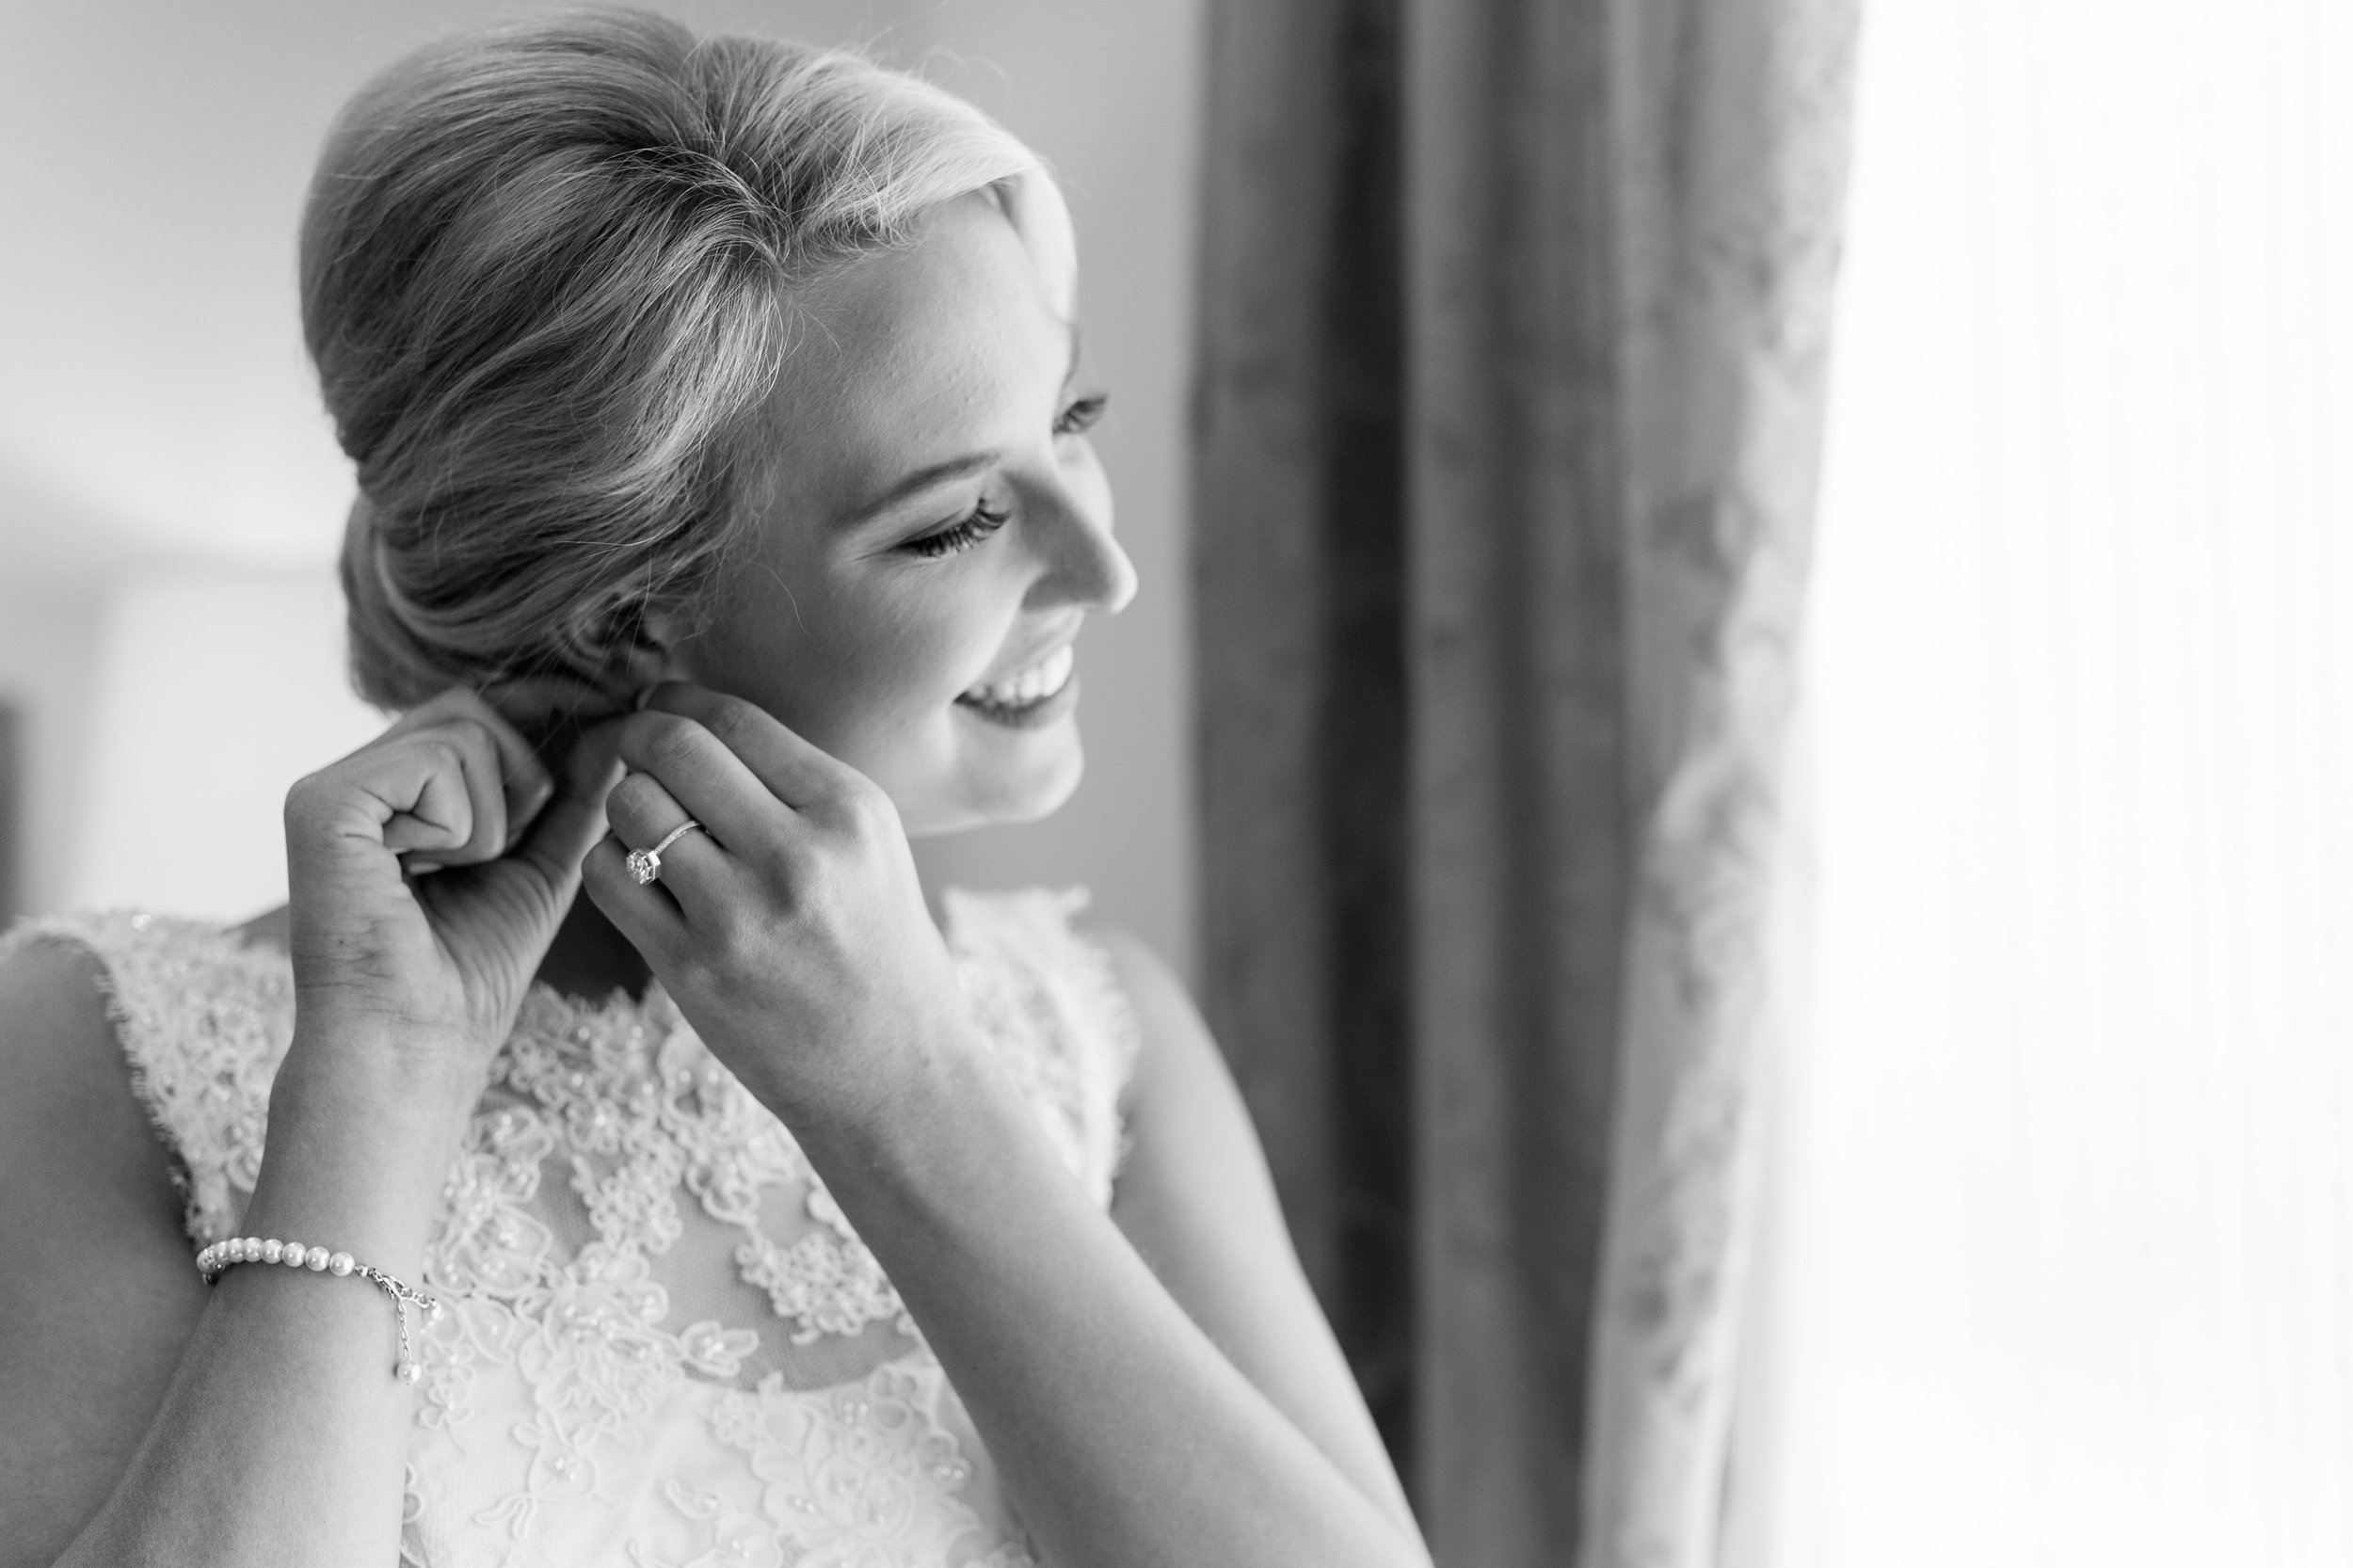 bride getting ready black and white photo